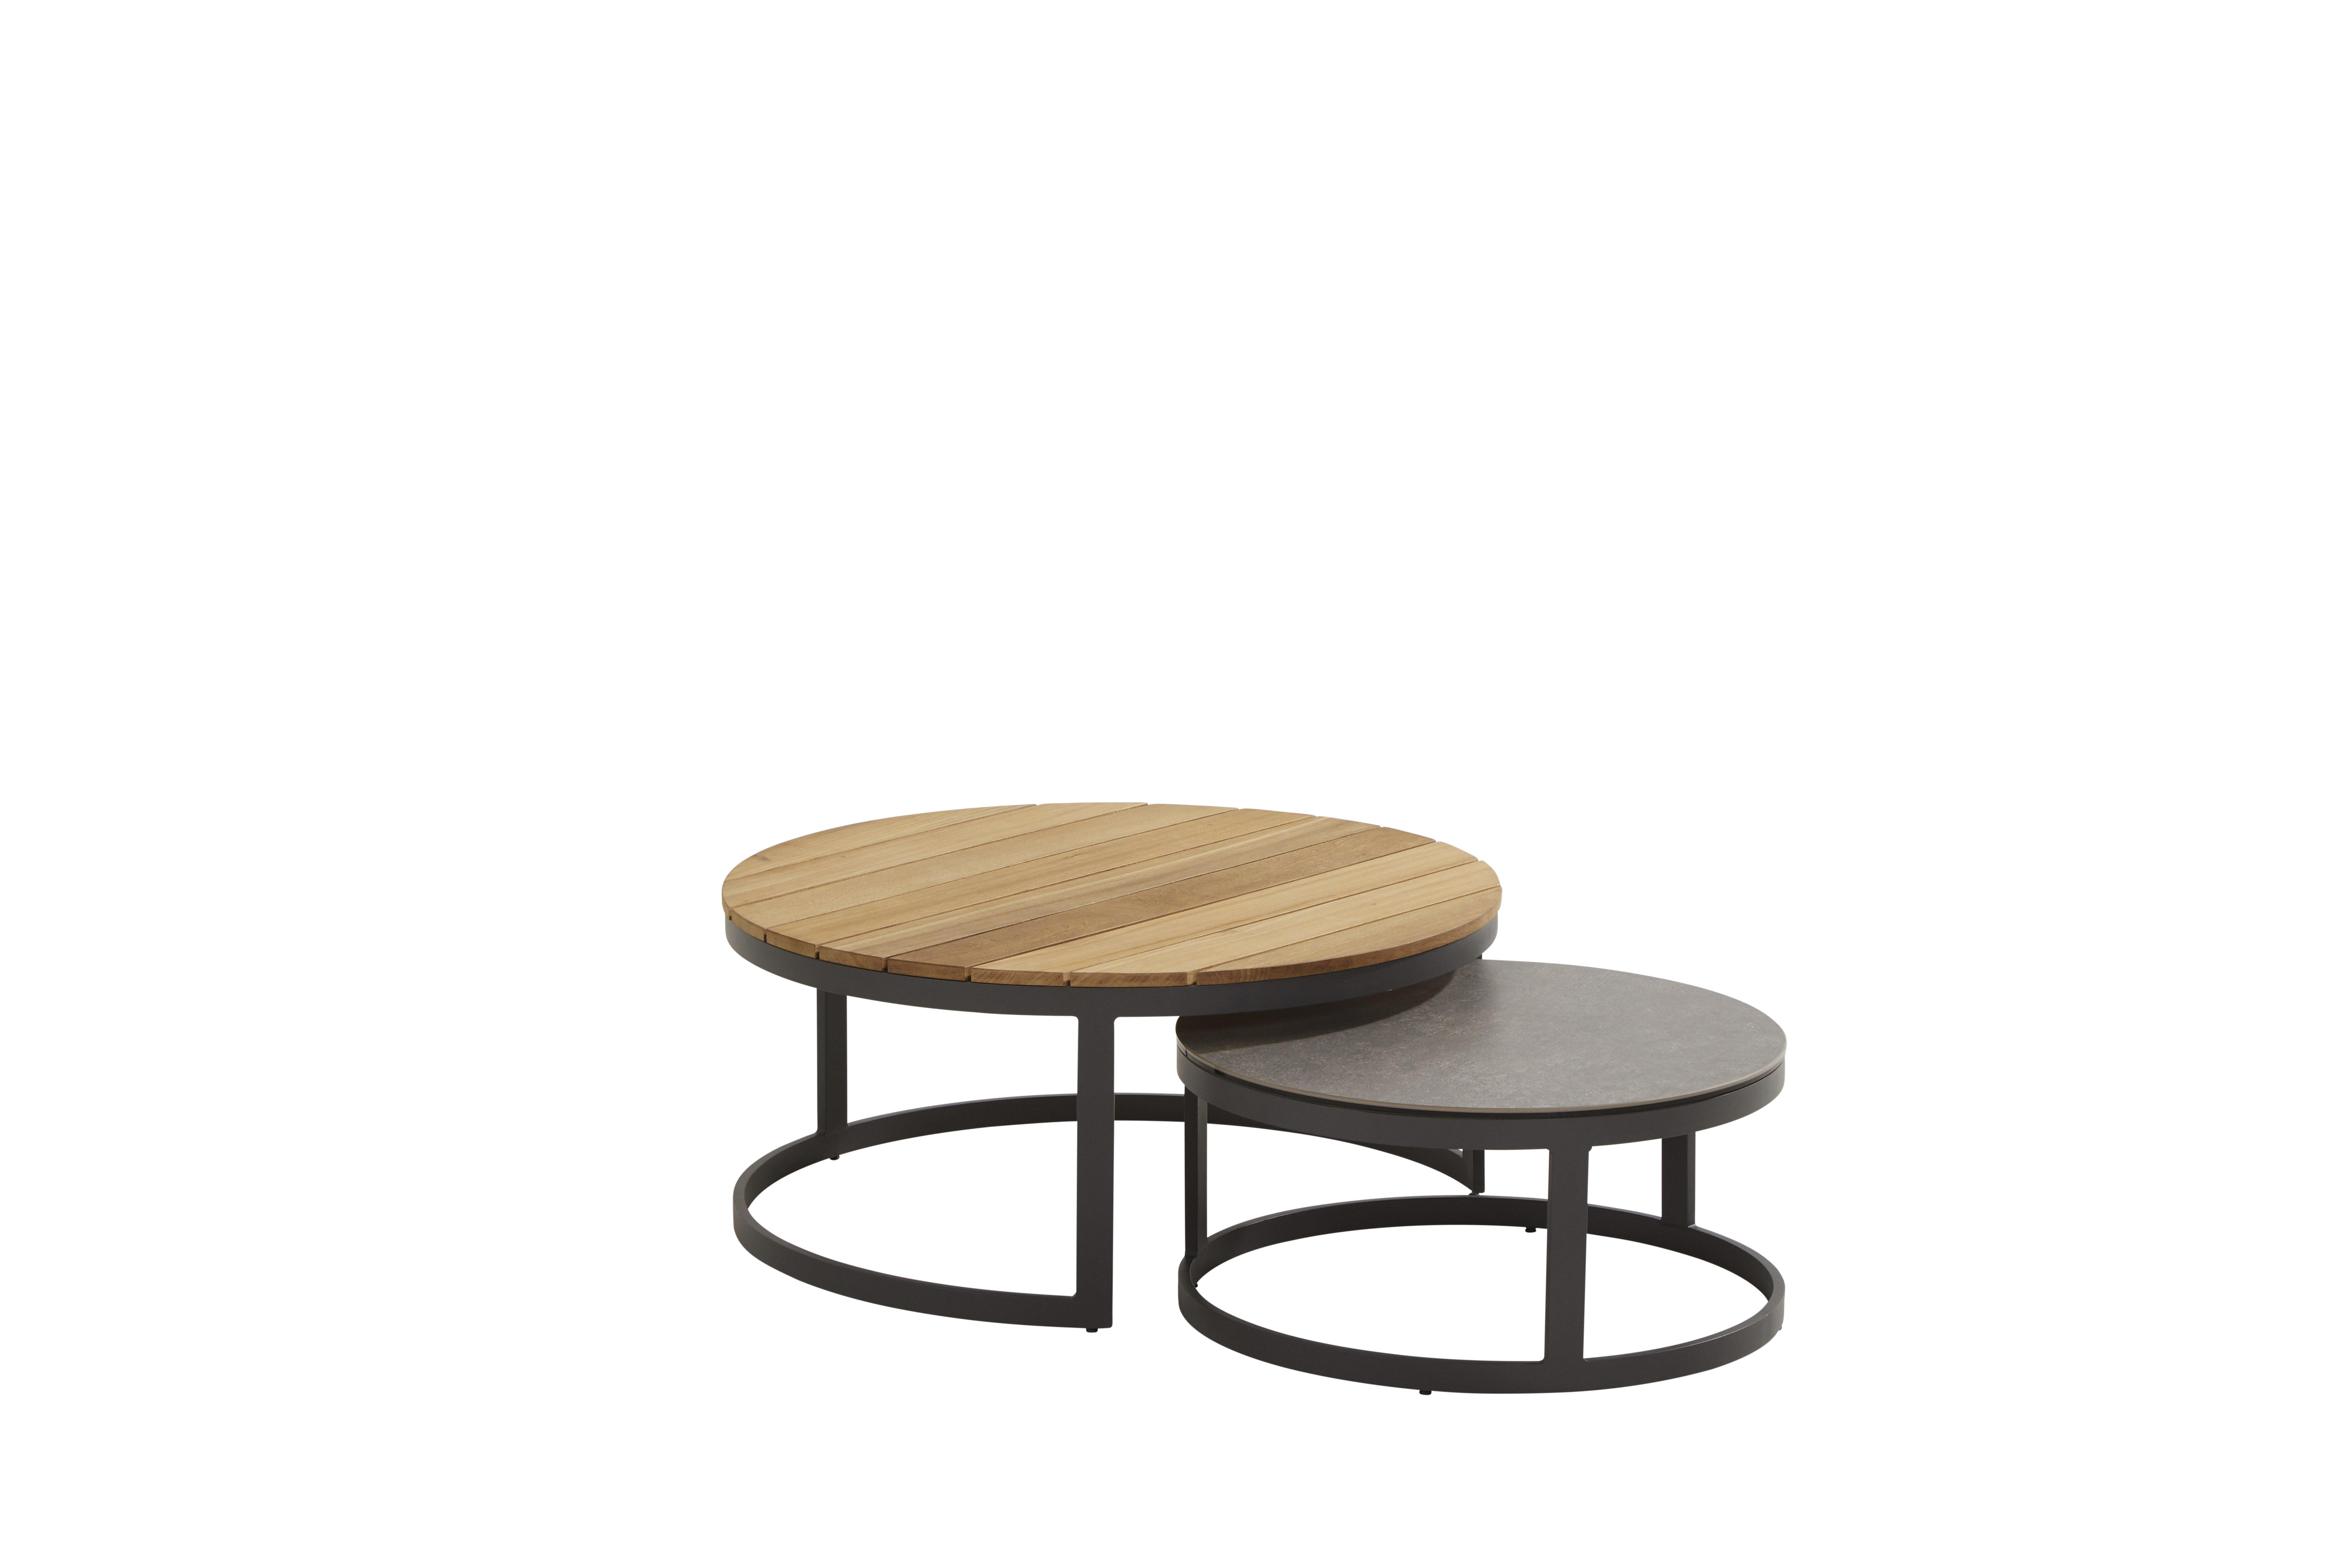 91024_ Stonic set of 2 coffee tables 80 and 60 cm teak and ceramic-1